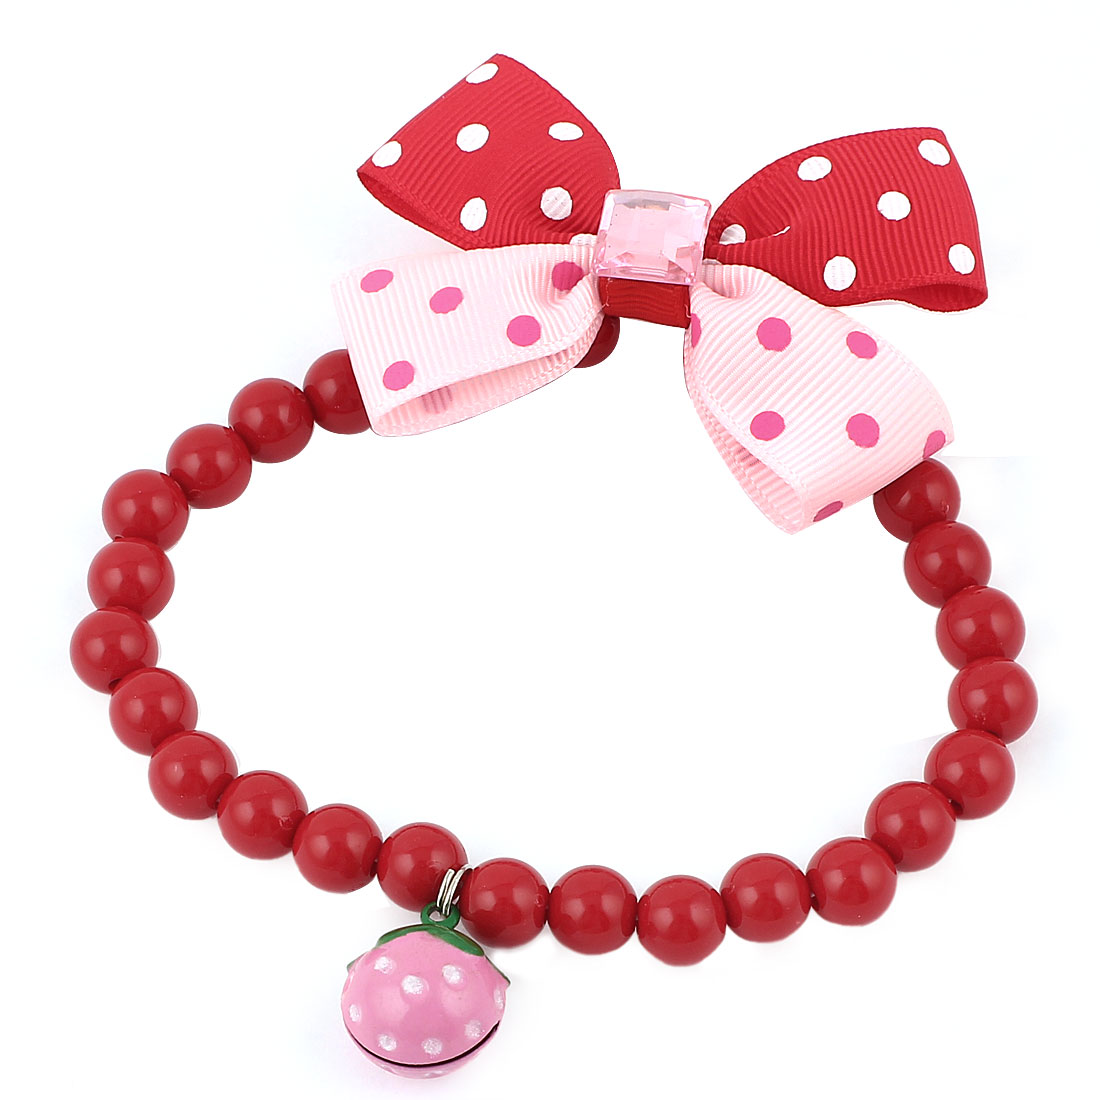 Metal Bell Pendant Bowtie Accent Pet Dog Plastic Beads Collar Necklace Red Pink M